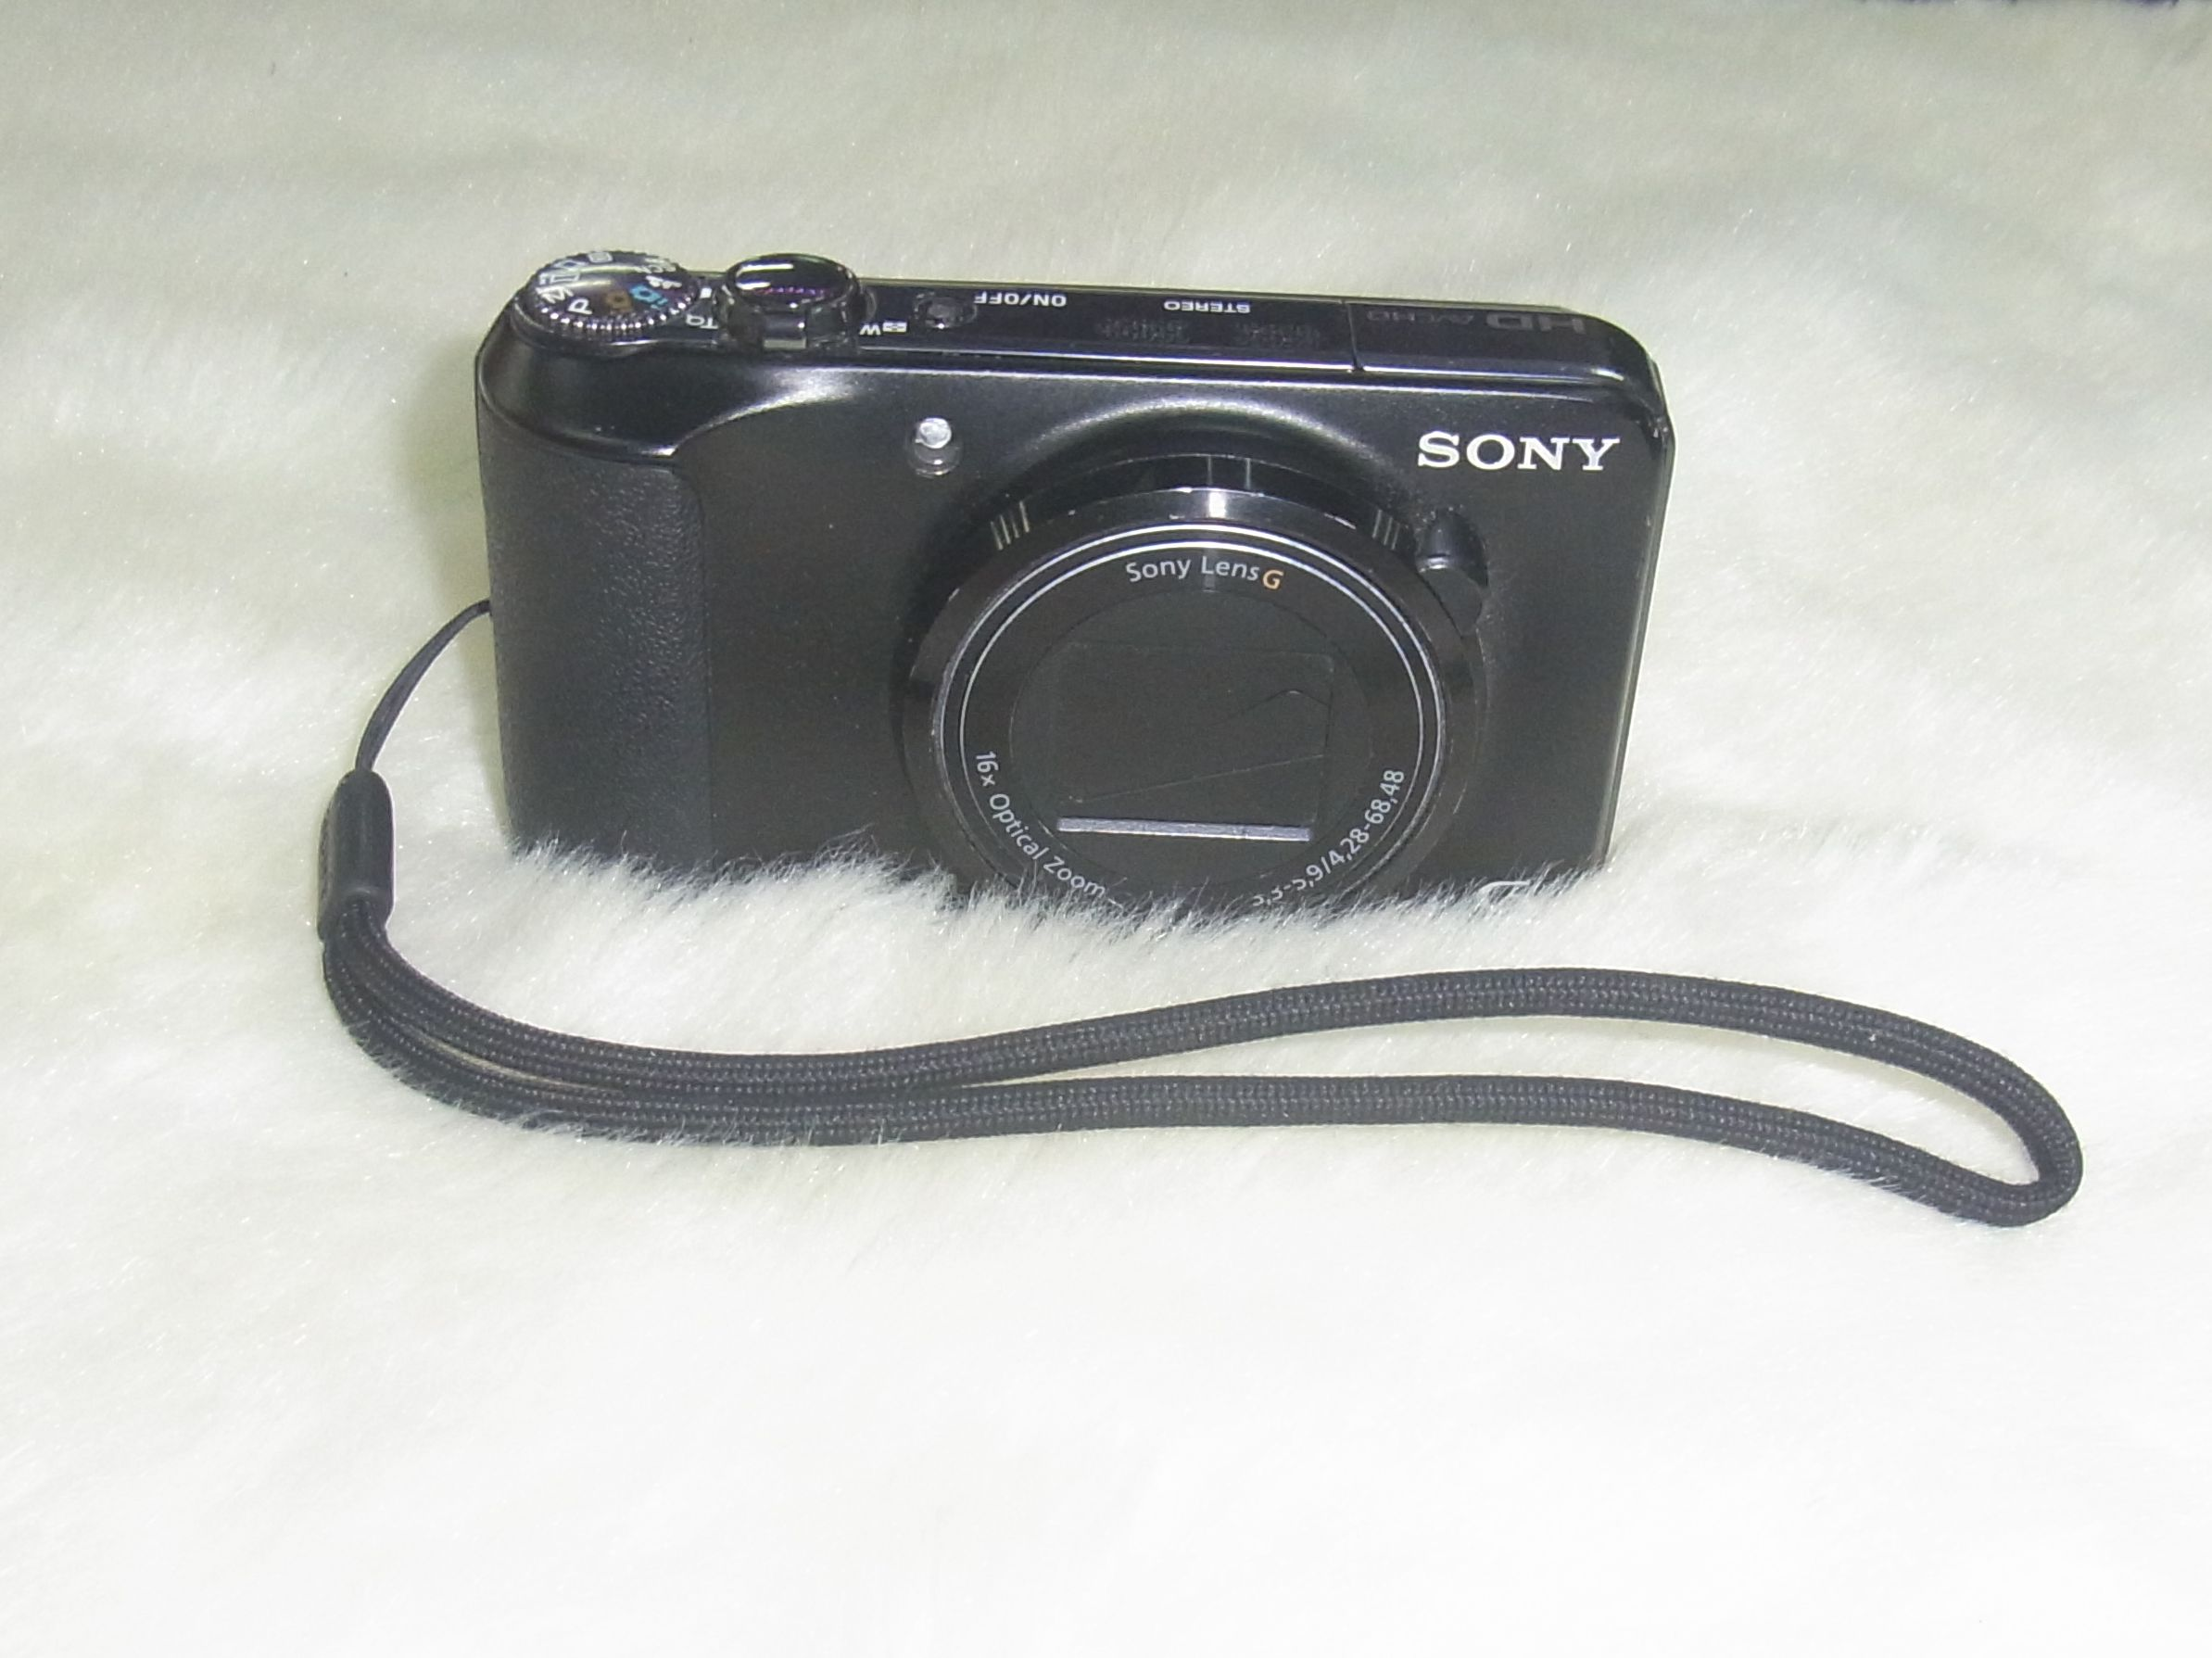 Sony/Sony DSC-HX10V Digital camera. Available in stock.